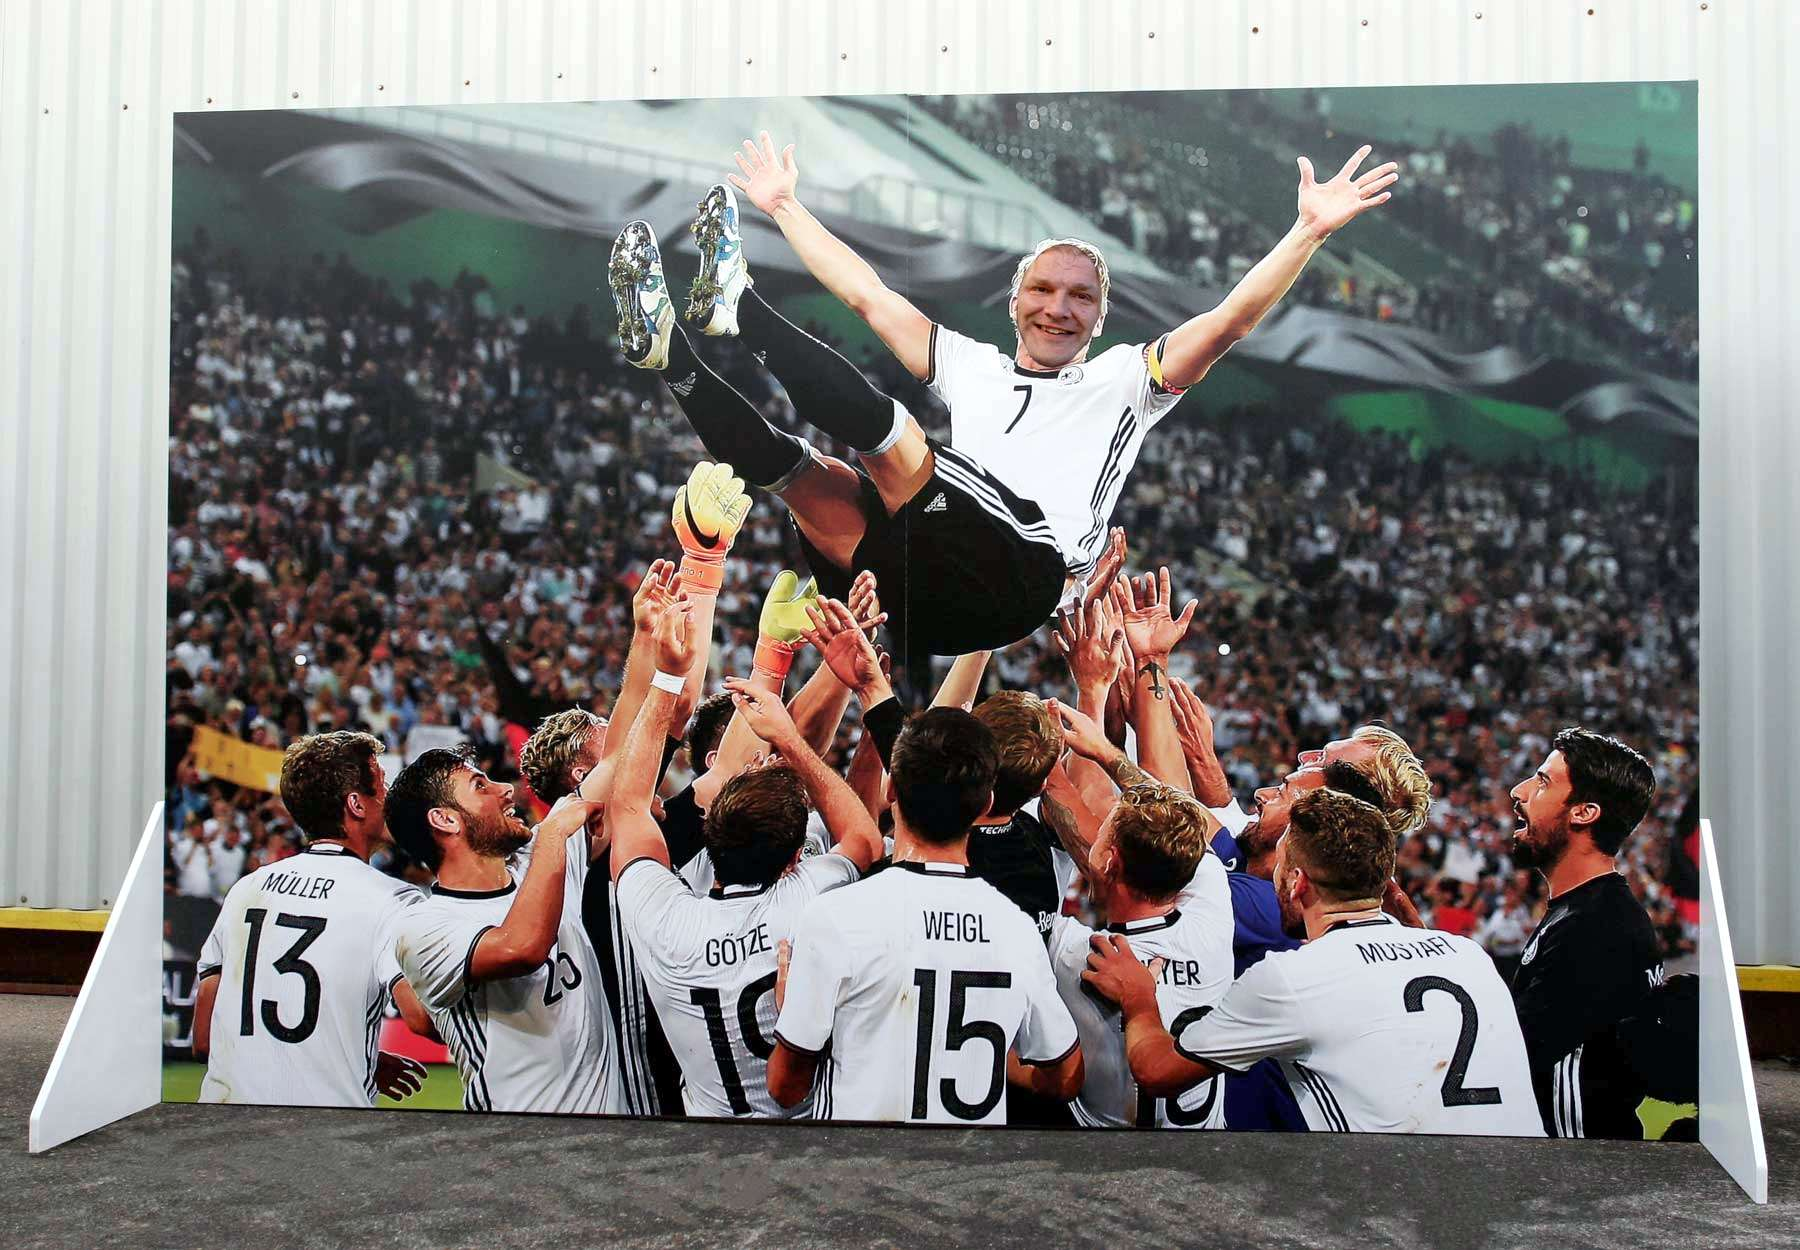 Germany world cup, Schweinsteiger